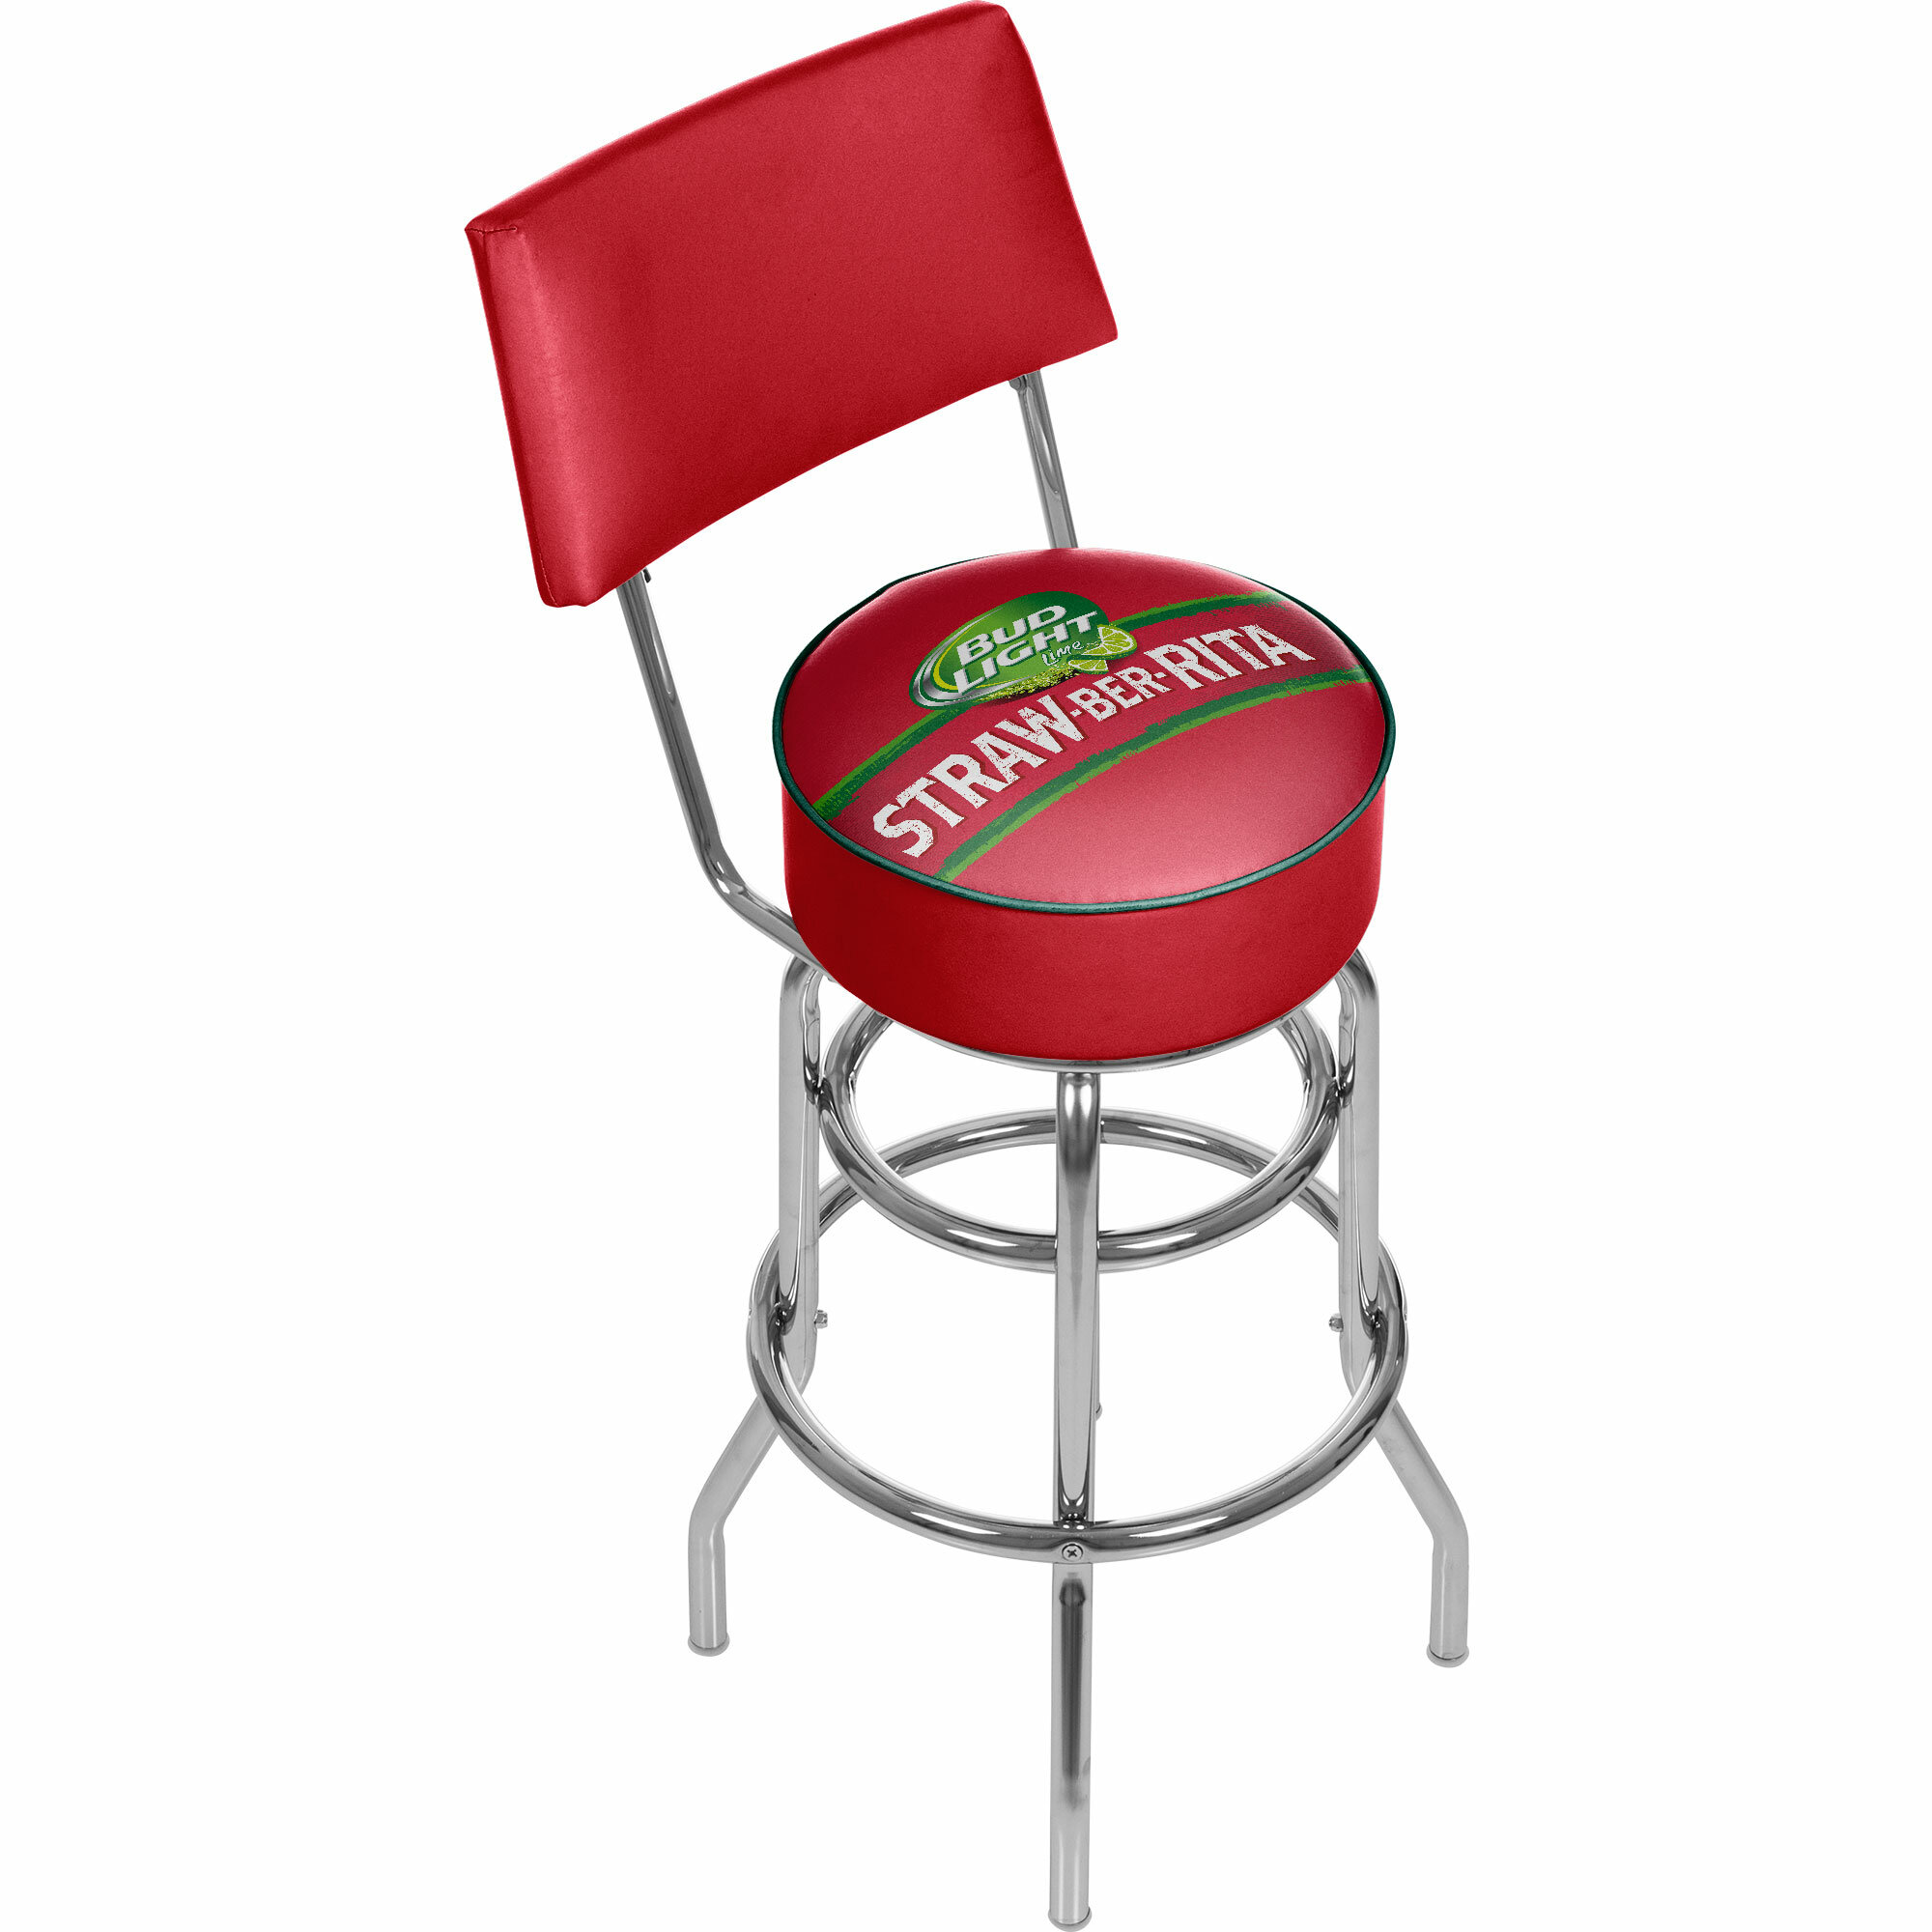 Trademark Gameroom Bud Light Straw-BER-Rita Padded Swivel Bar Stool